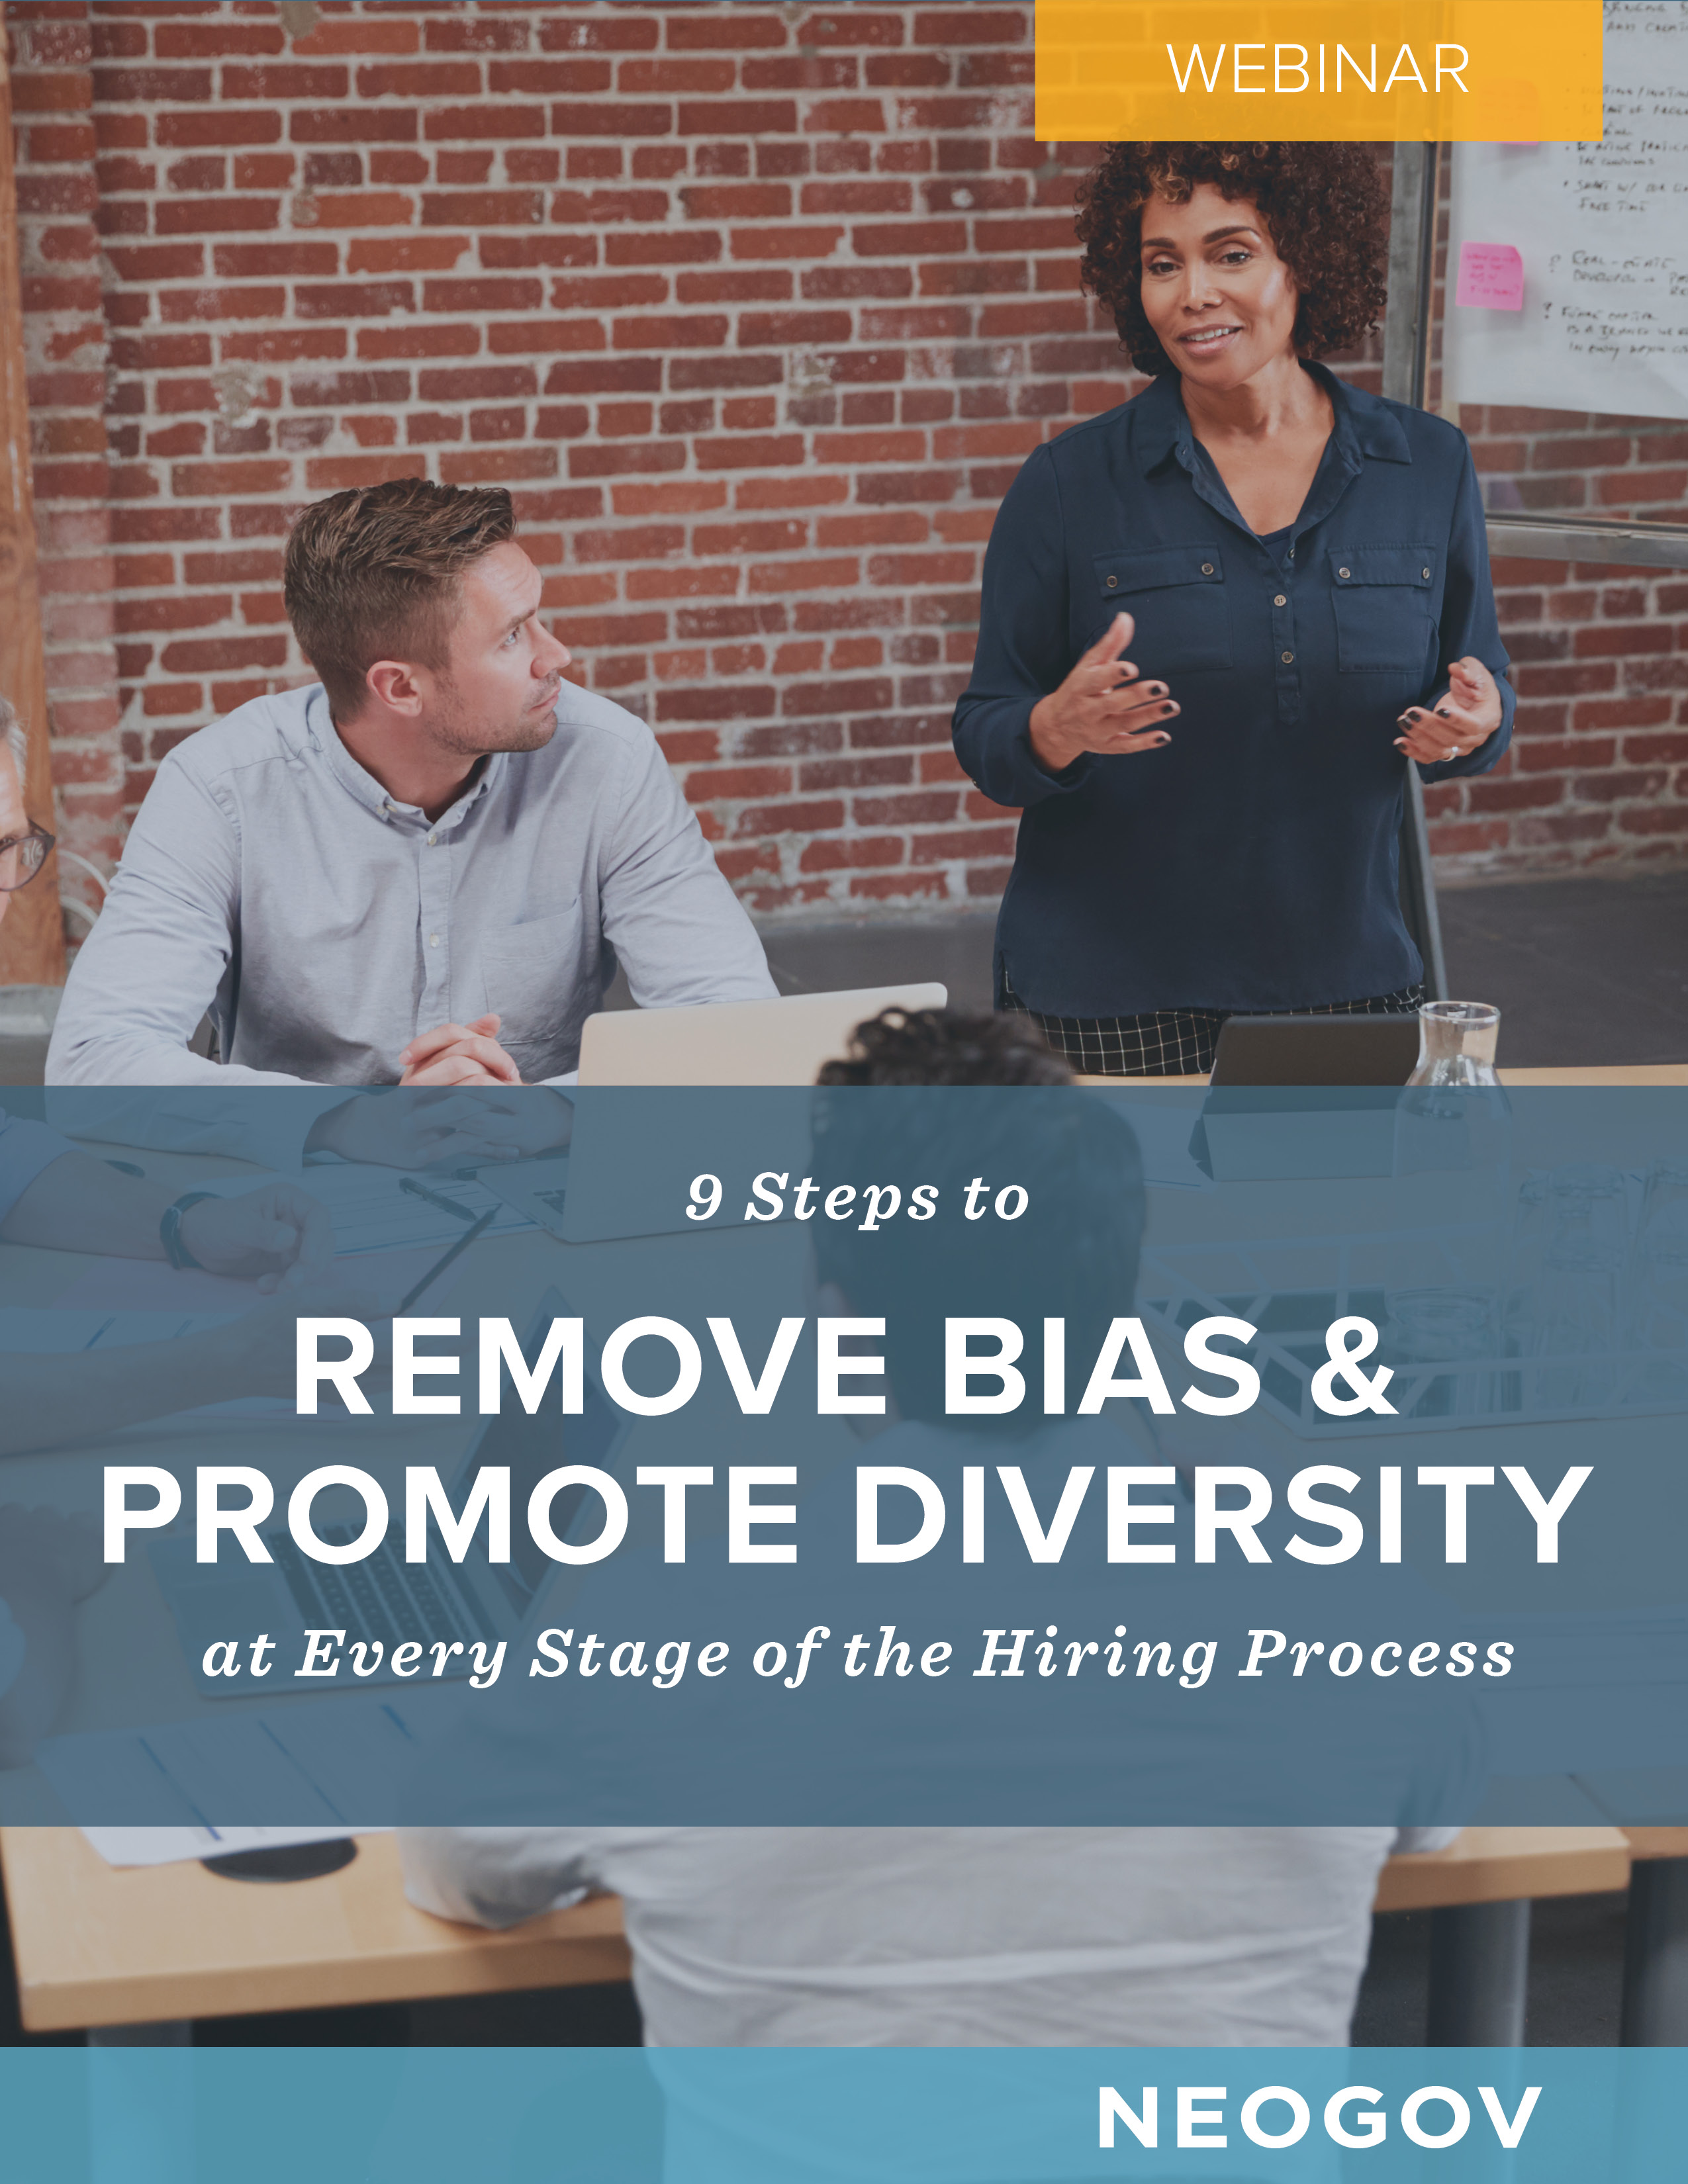 Webinar - 9 Steps to Remove Bias & Promote Diversity